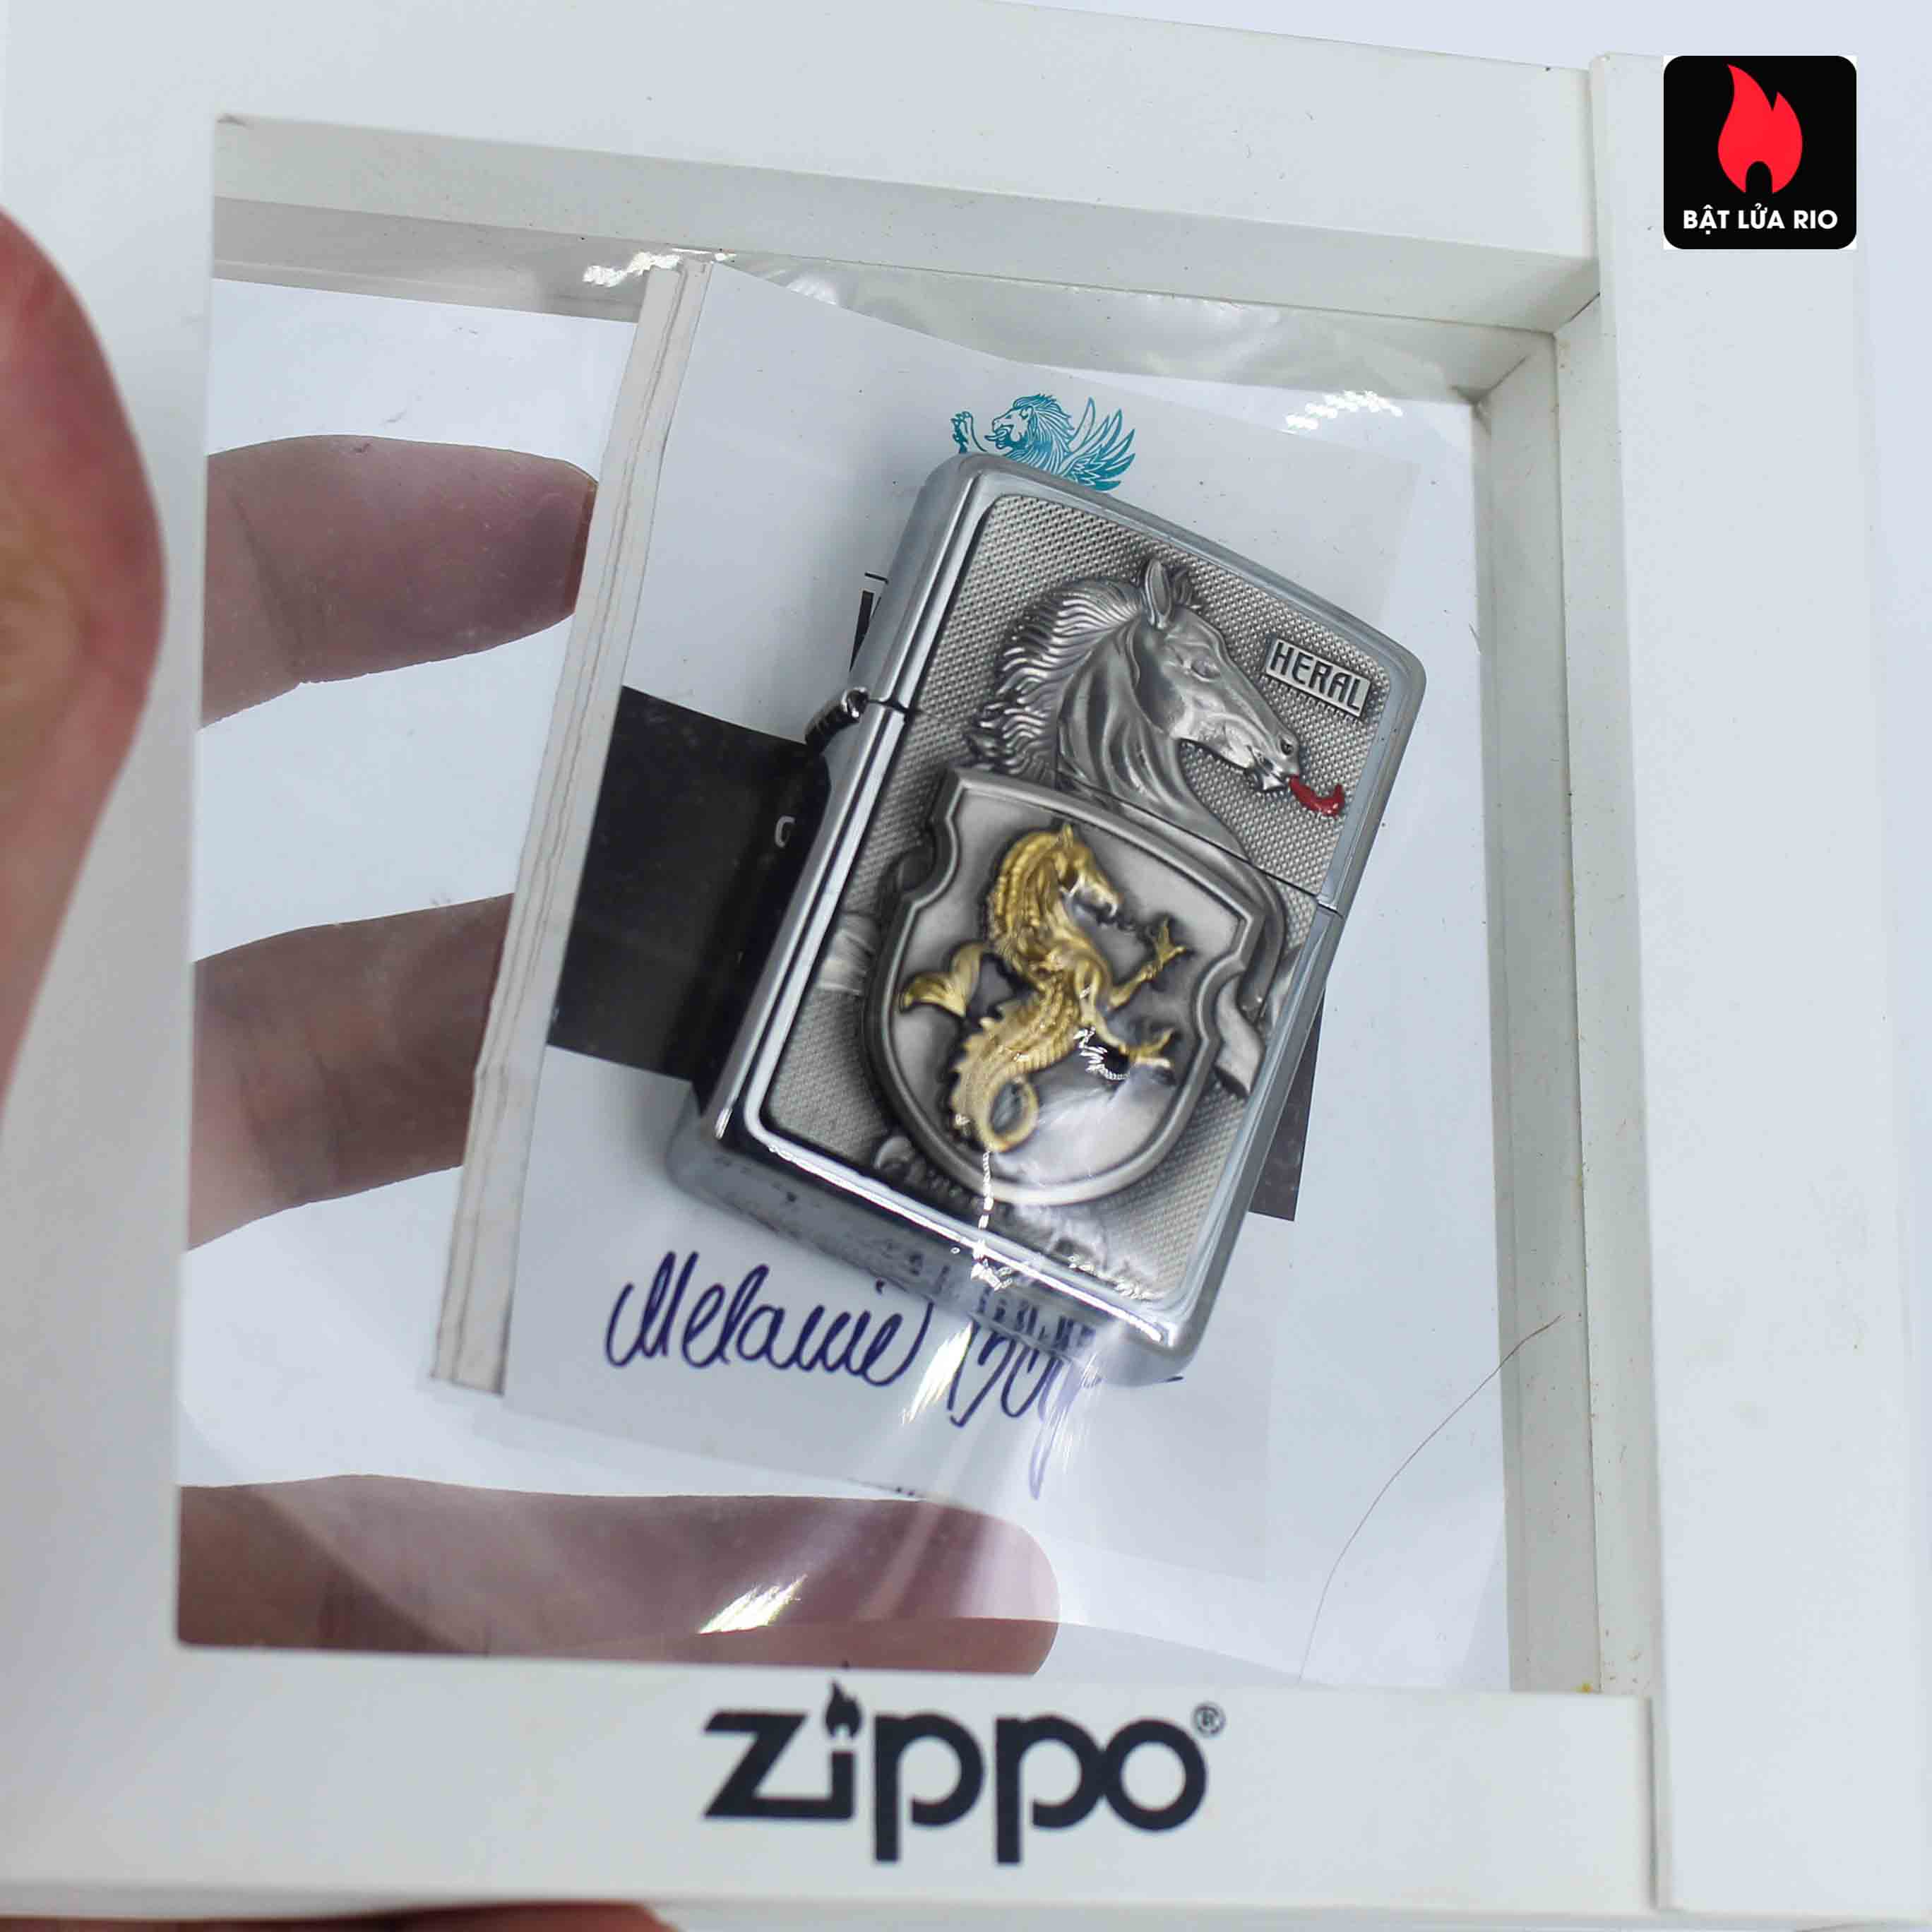 Zippo Set 2014 - Collectible Europe Animal Heral Arco Zippo Lighter Limited Edition 5